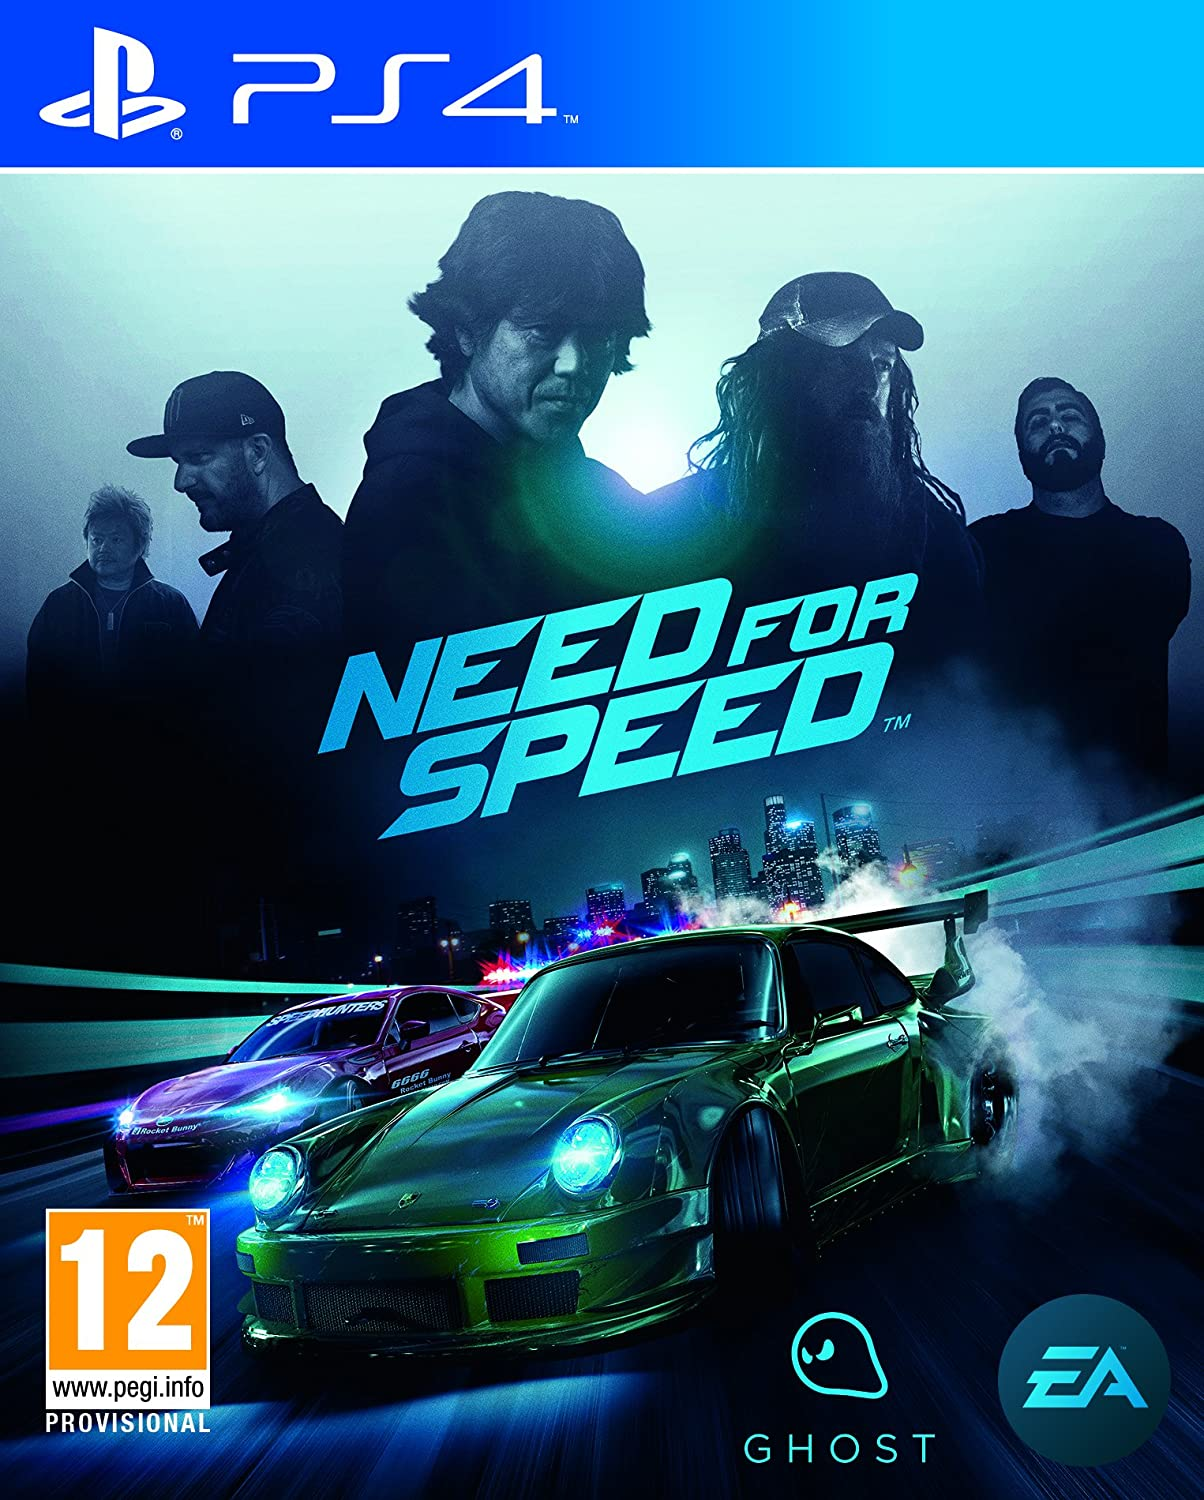 Need For Speed PS4 su Amazon a 29,99€